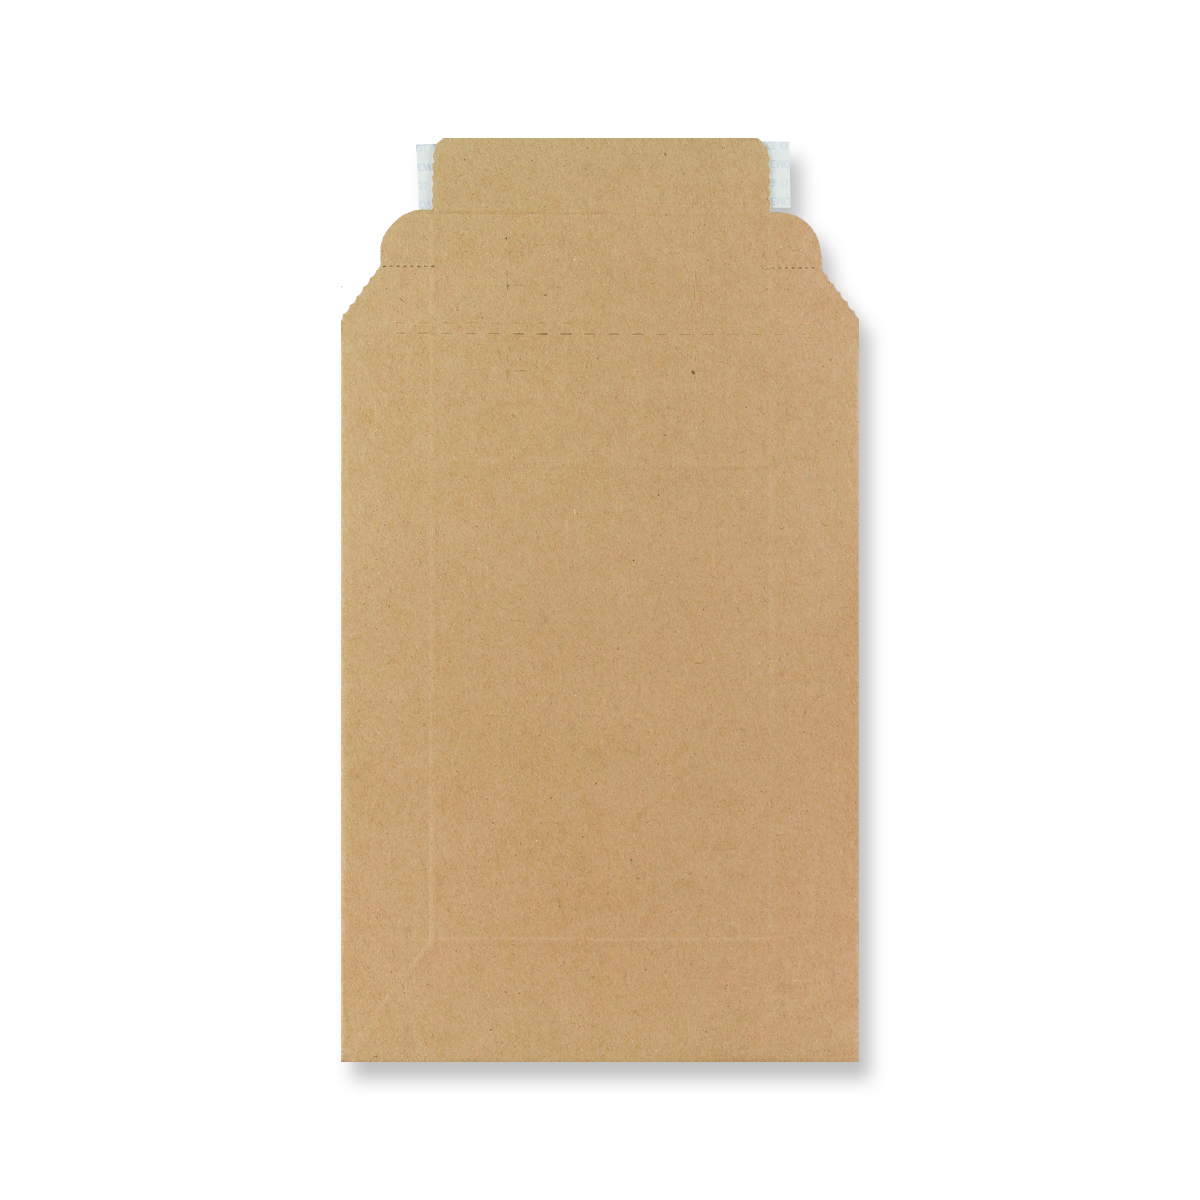 185 x 125mm MANILLA RIGID MAILER FLUTE ENVELOPES